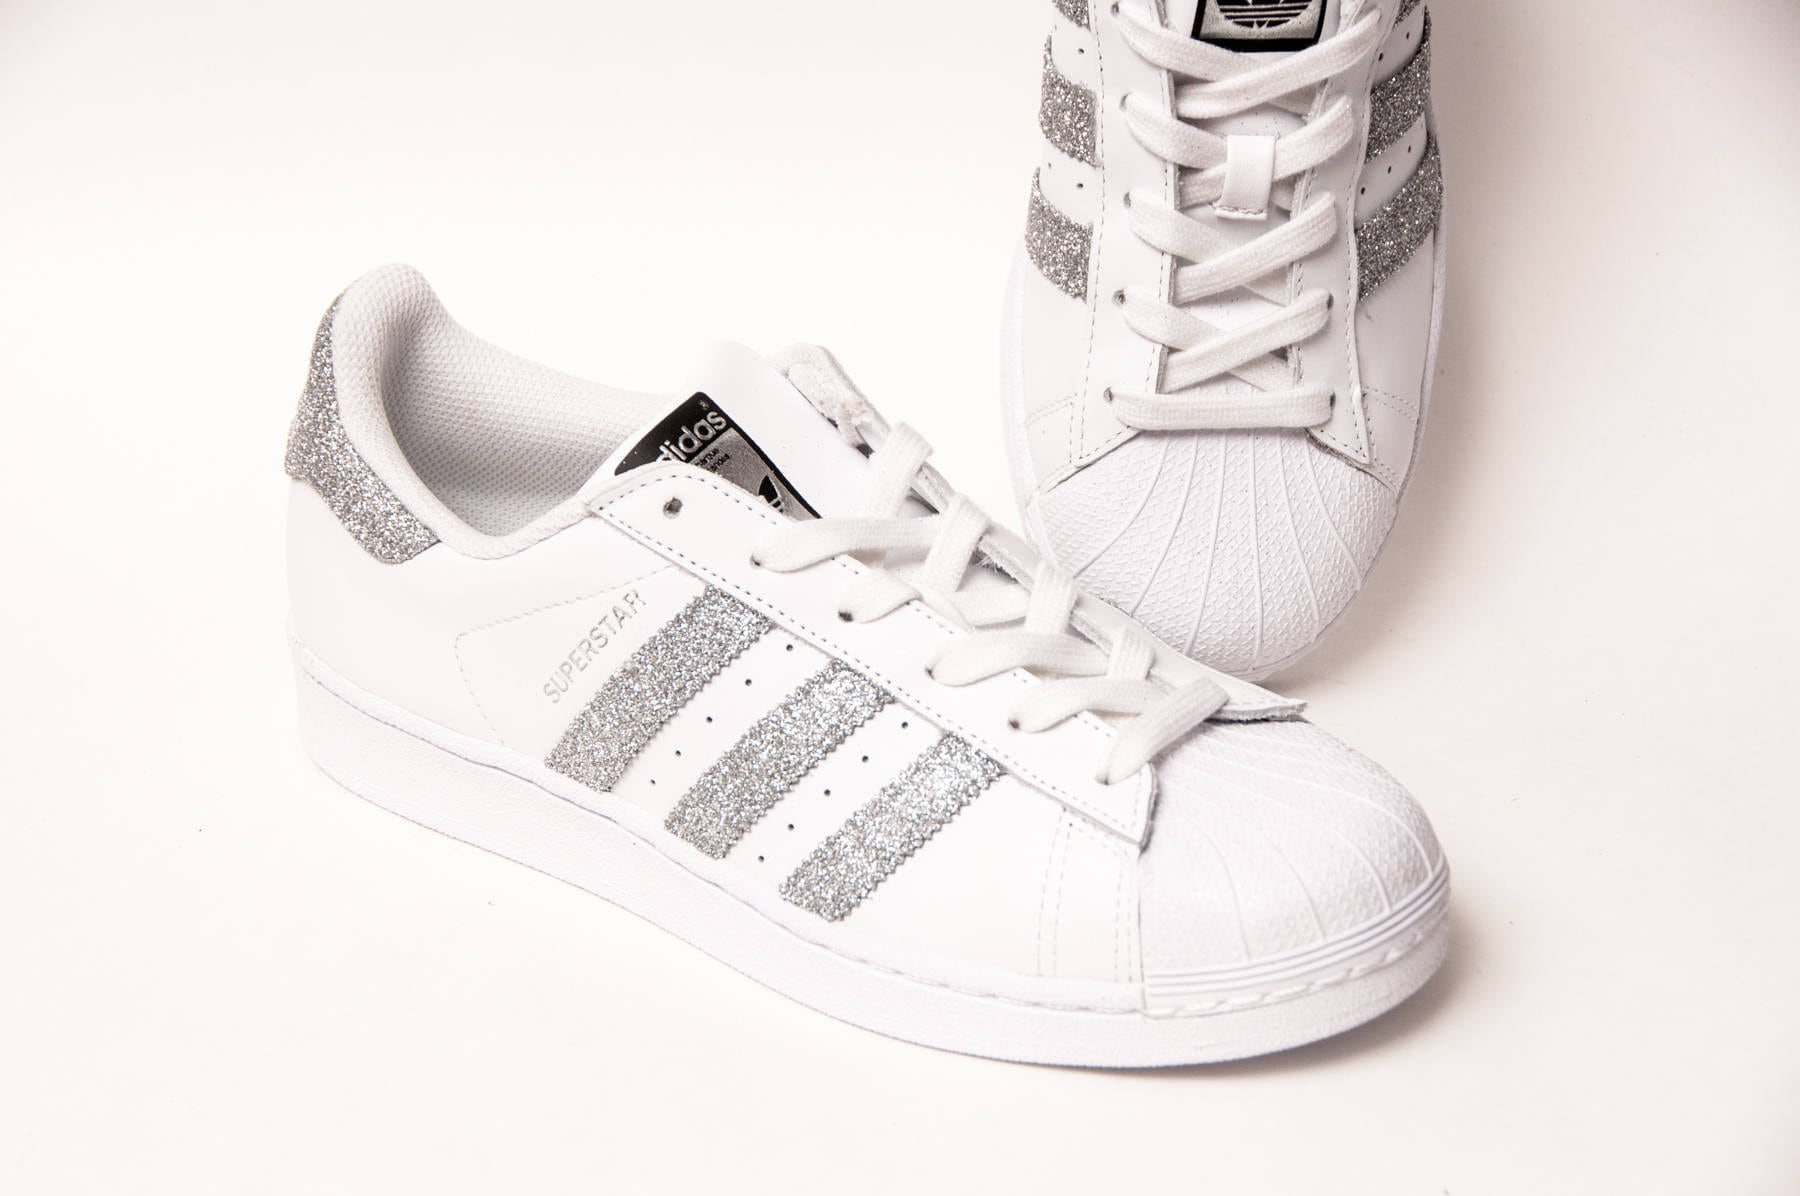 5e78cc4b6cf371 Glitter Silver Adidas Superstars II Fashion Sneakers Shoes